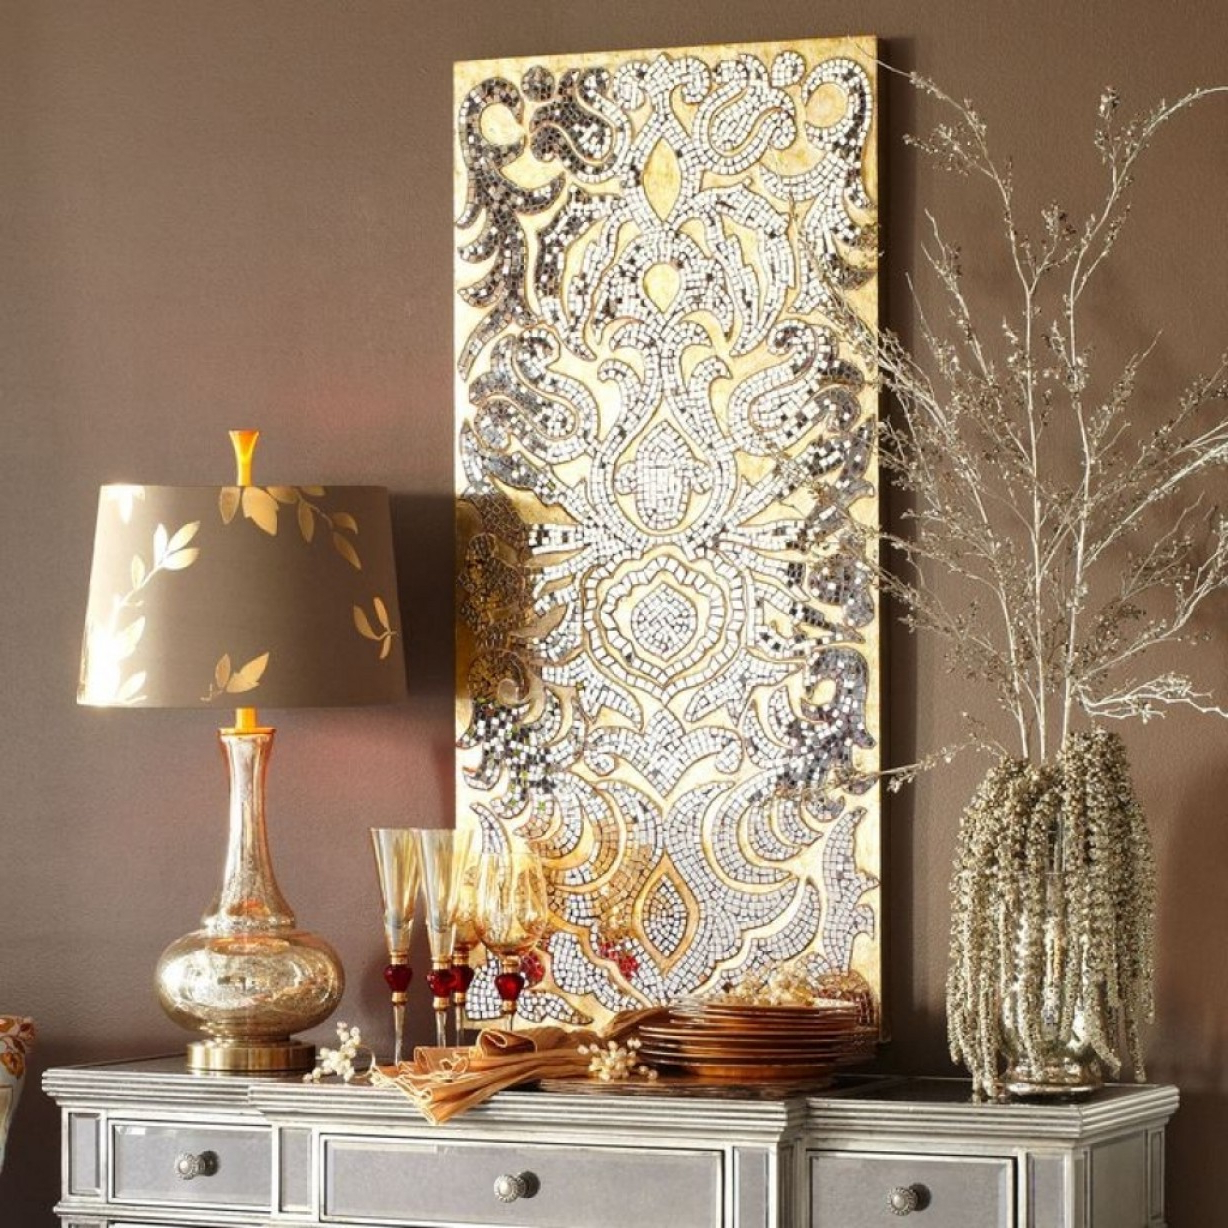 Most Recent Cute Mirror Sets Wall Decor Ideas Awesome Design Rectangular Rose Regarding Cute Wall Mirrors (View 4 of 20)